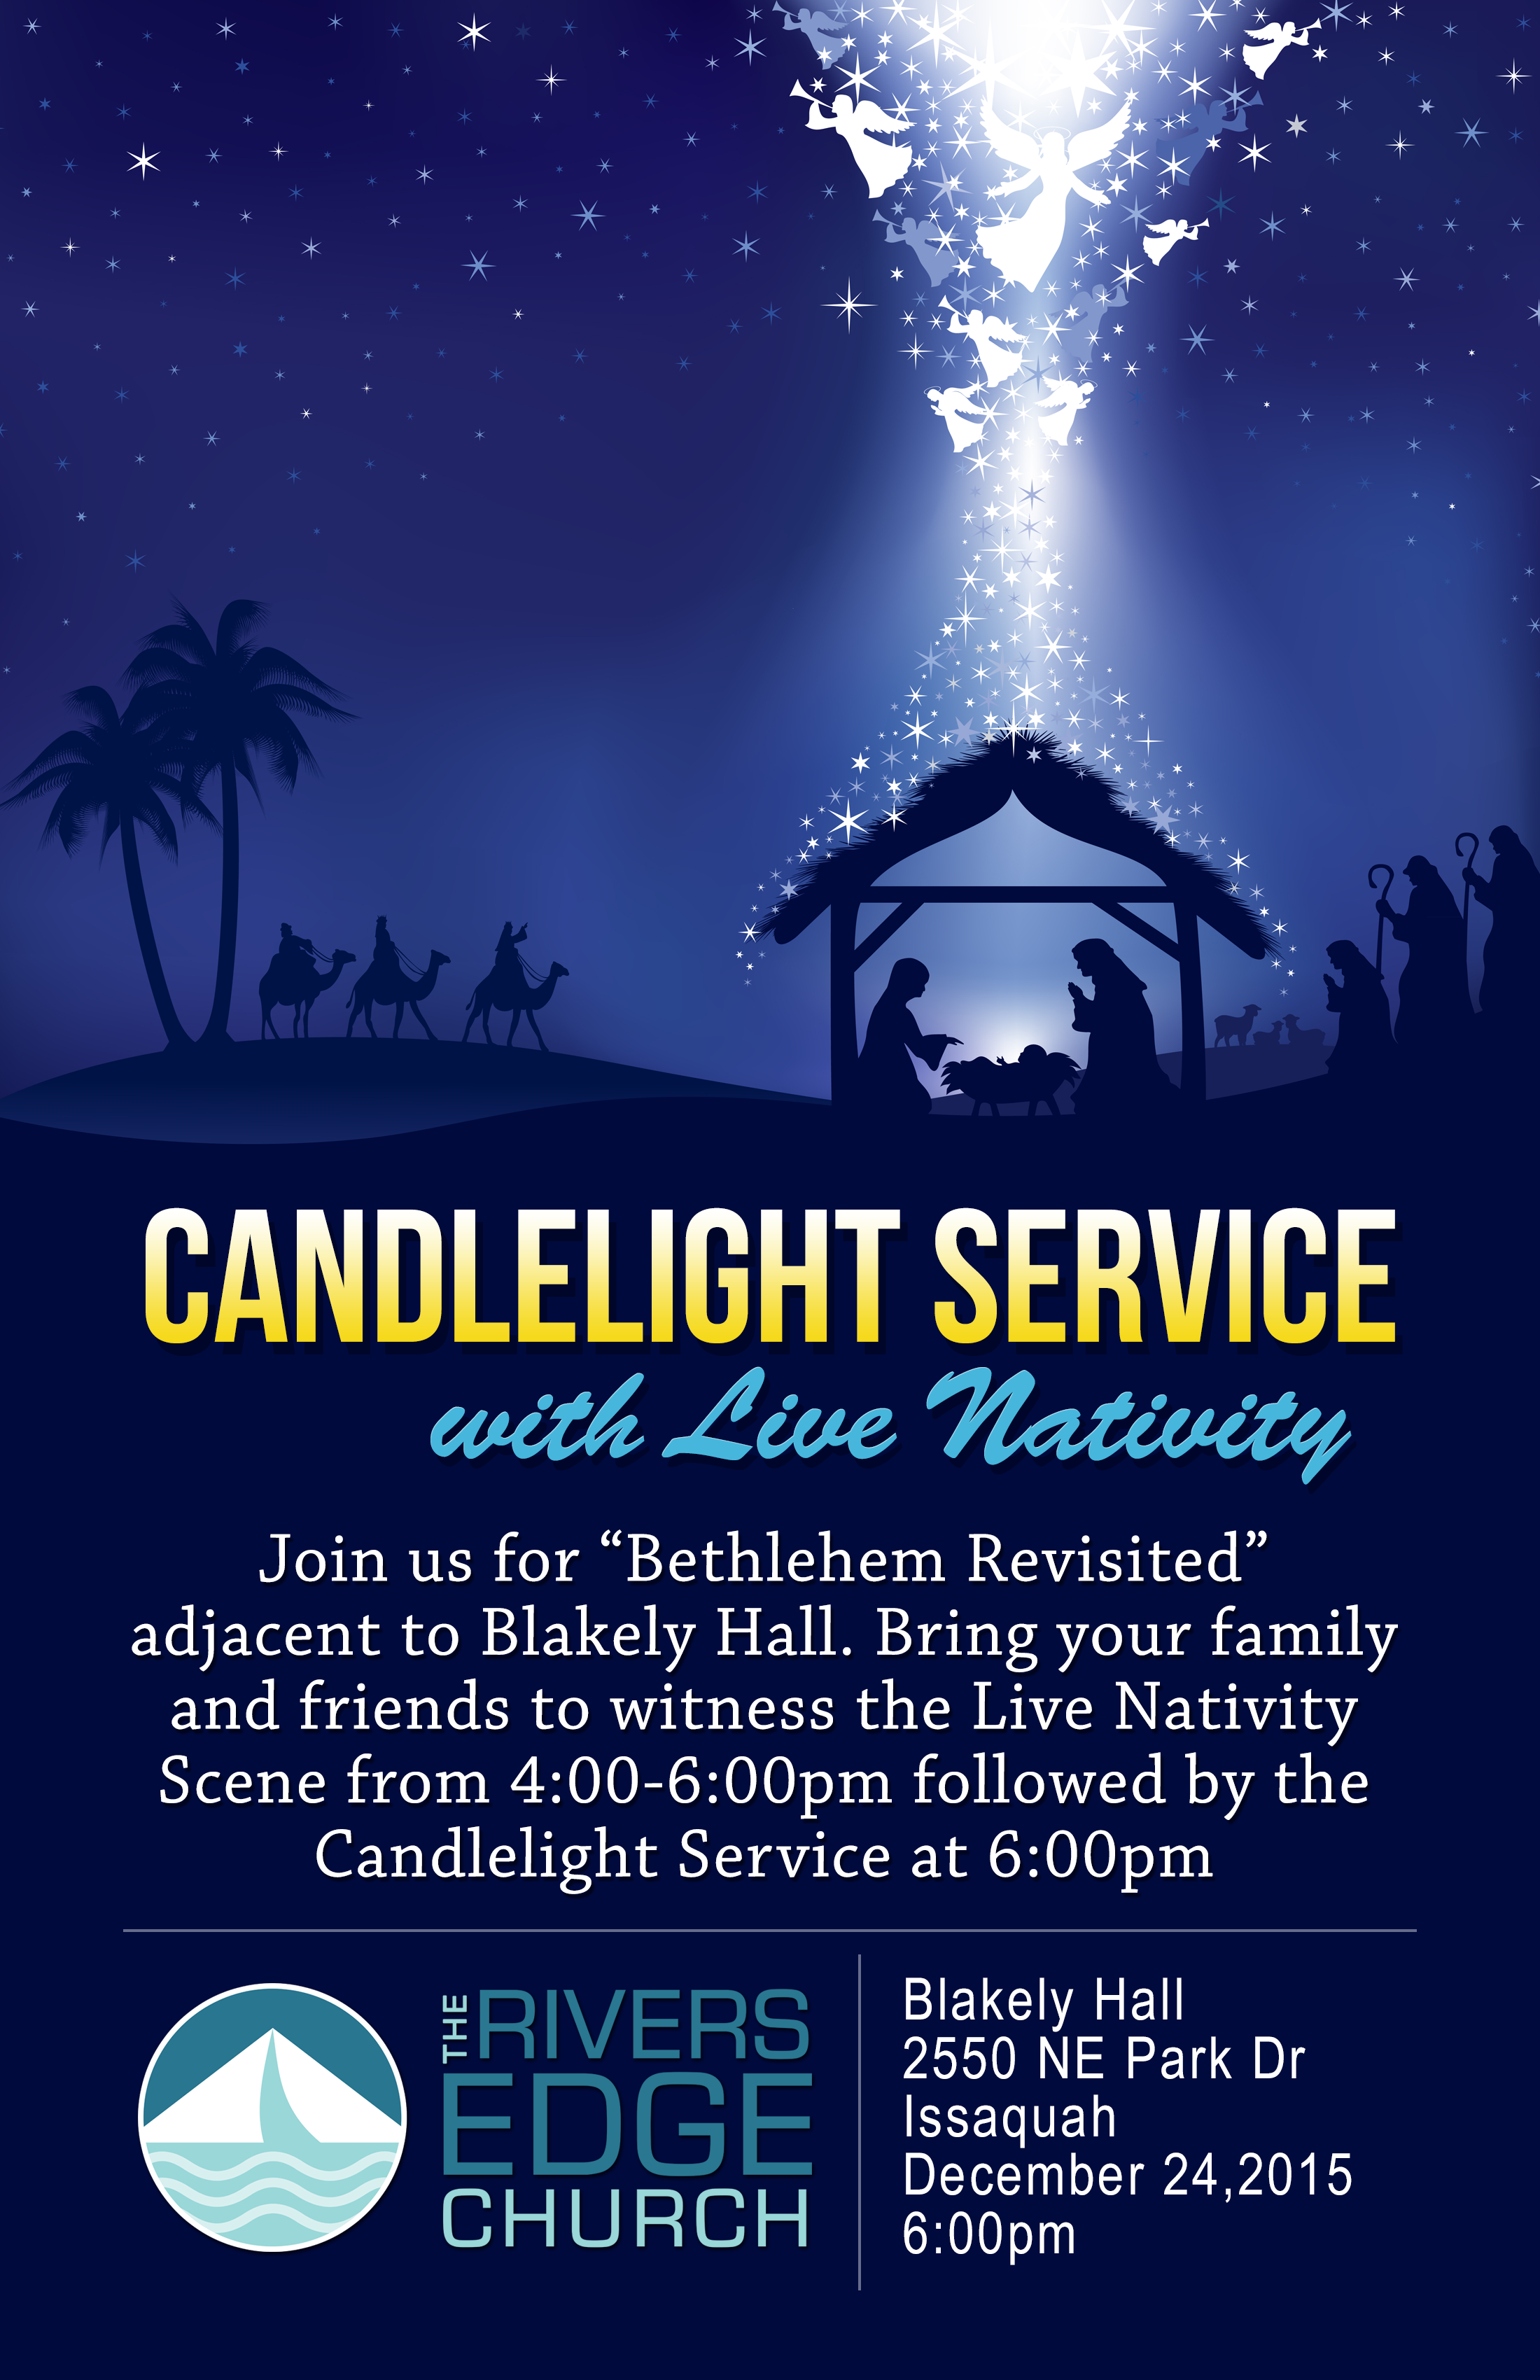 christmas eve live nativity followed by 6pm candlelight service - Church Of The Highlands Christmas